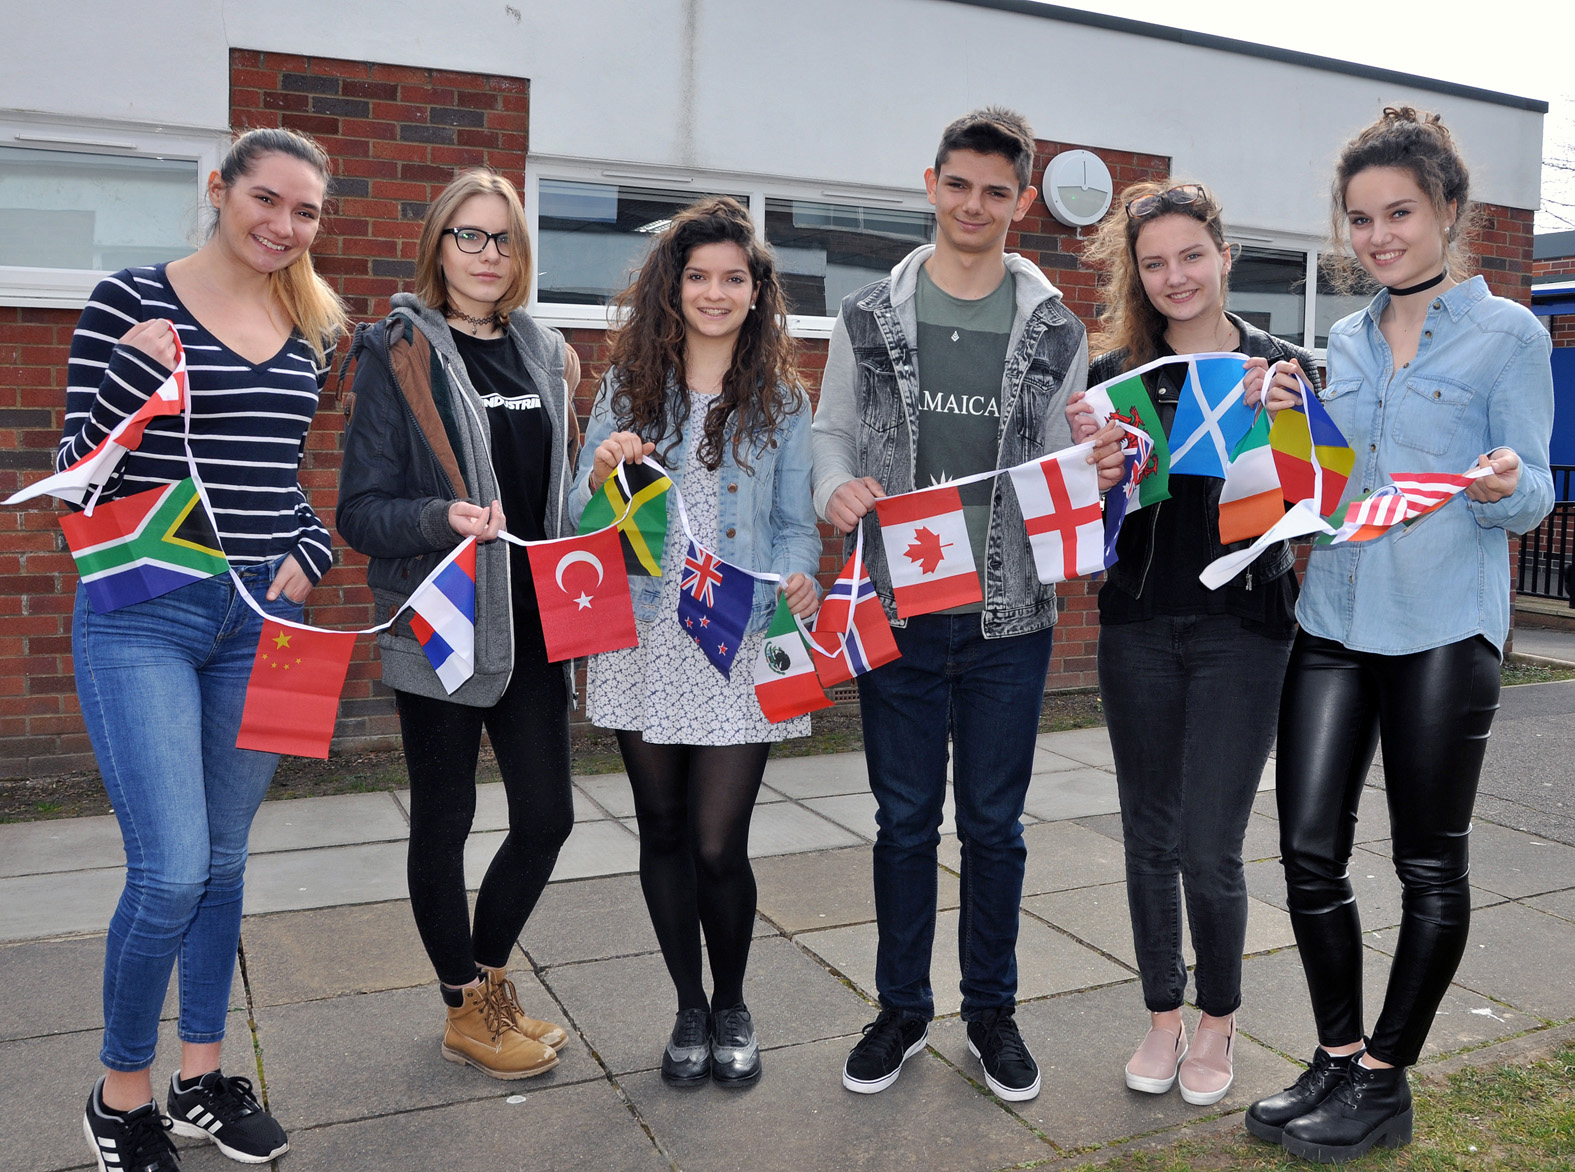 CELEBRATION: Avonbourne Sixth Form in Bournemouth has celebrated the contribution its international students have made to the college. Here are some of Avonbourne's current international students.